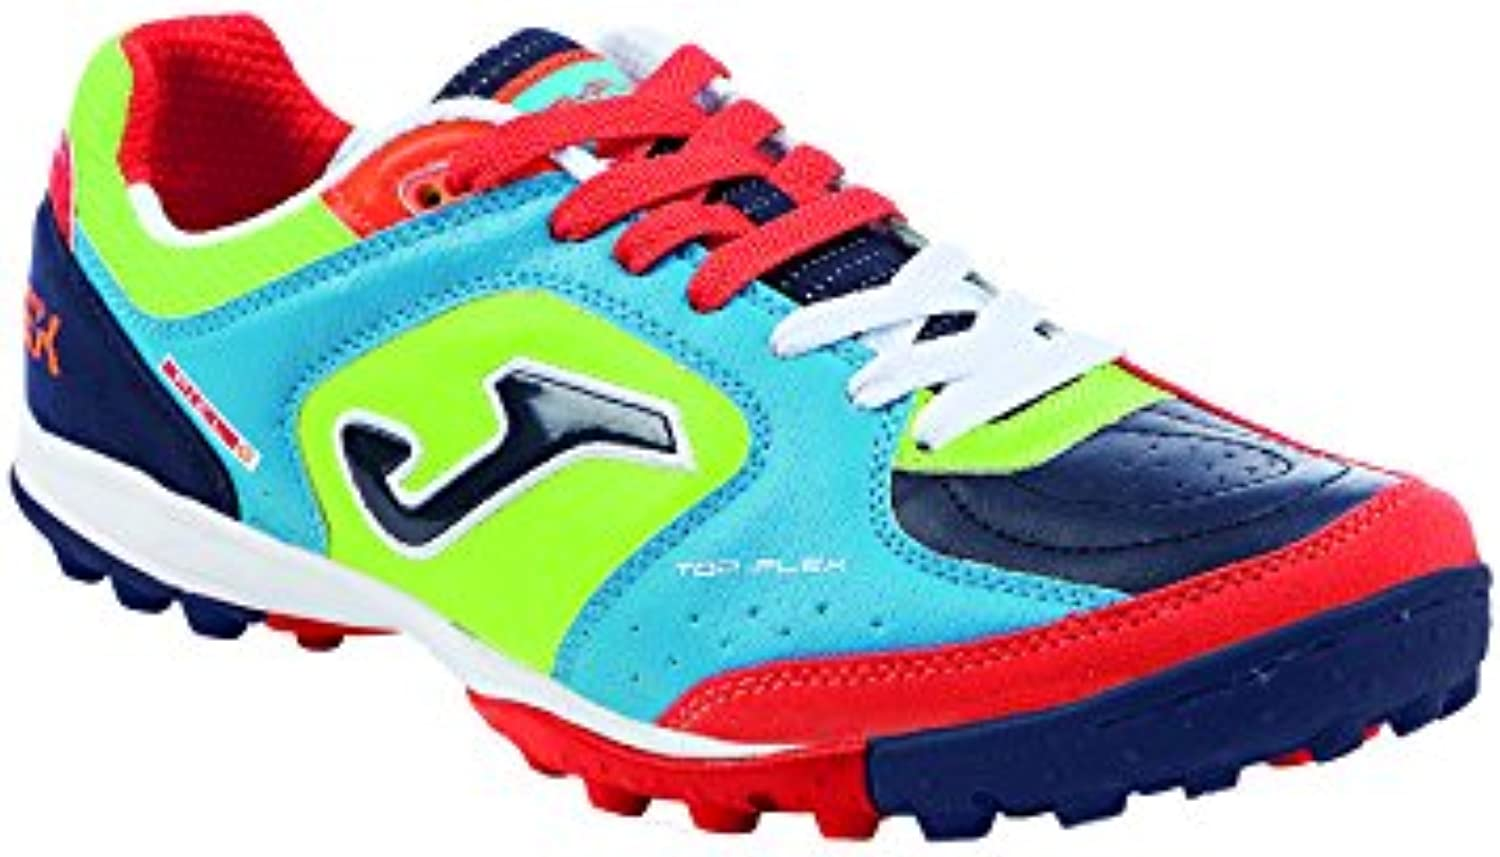 JOMA CALCETTO TOP FLEX 616 FLUOR-NAVY-RED-BLUE TURF 43.5